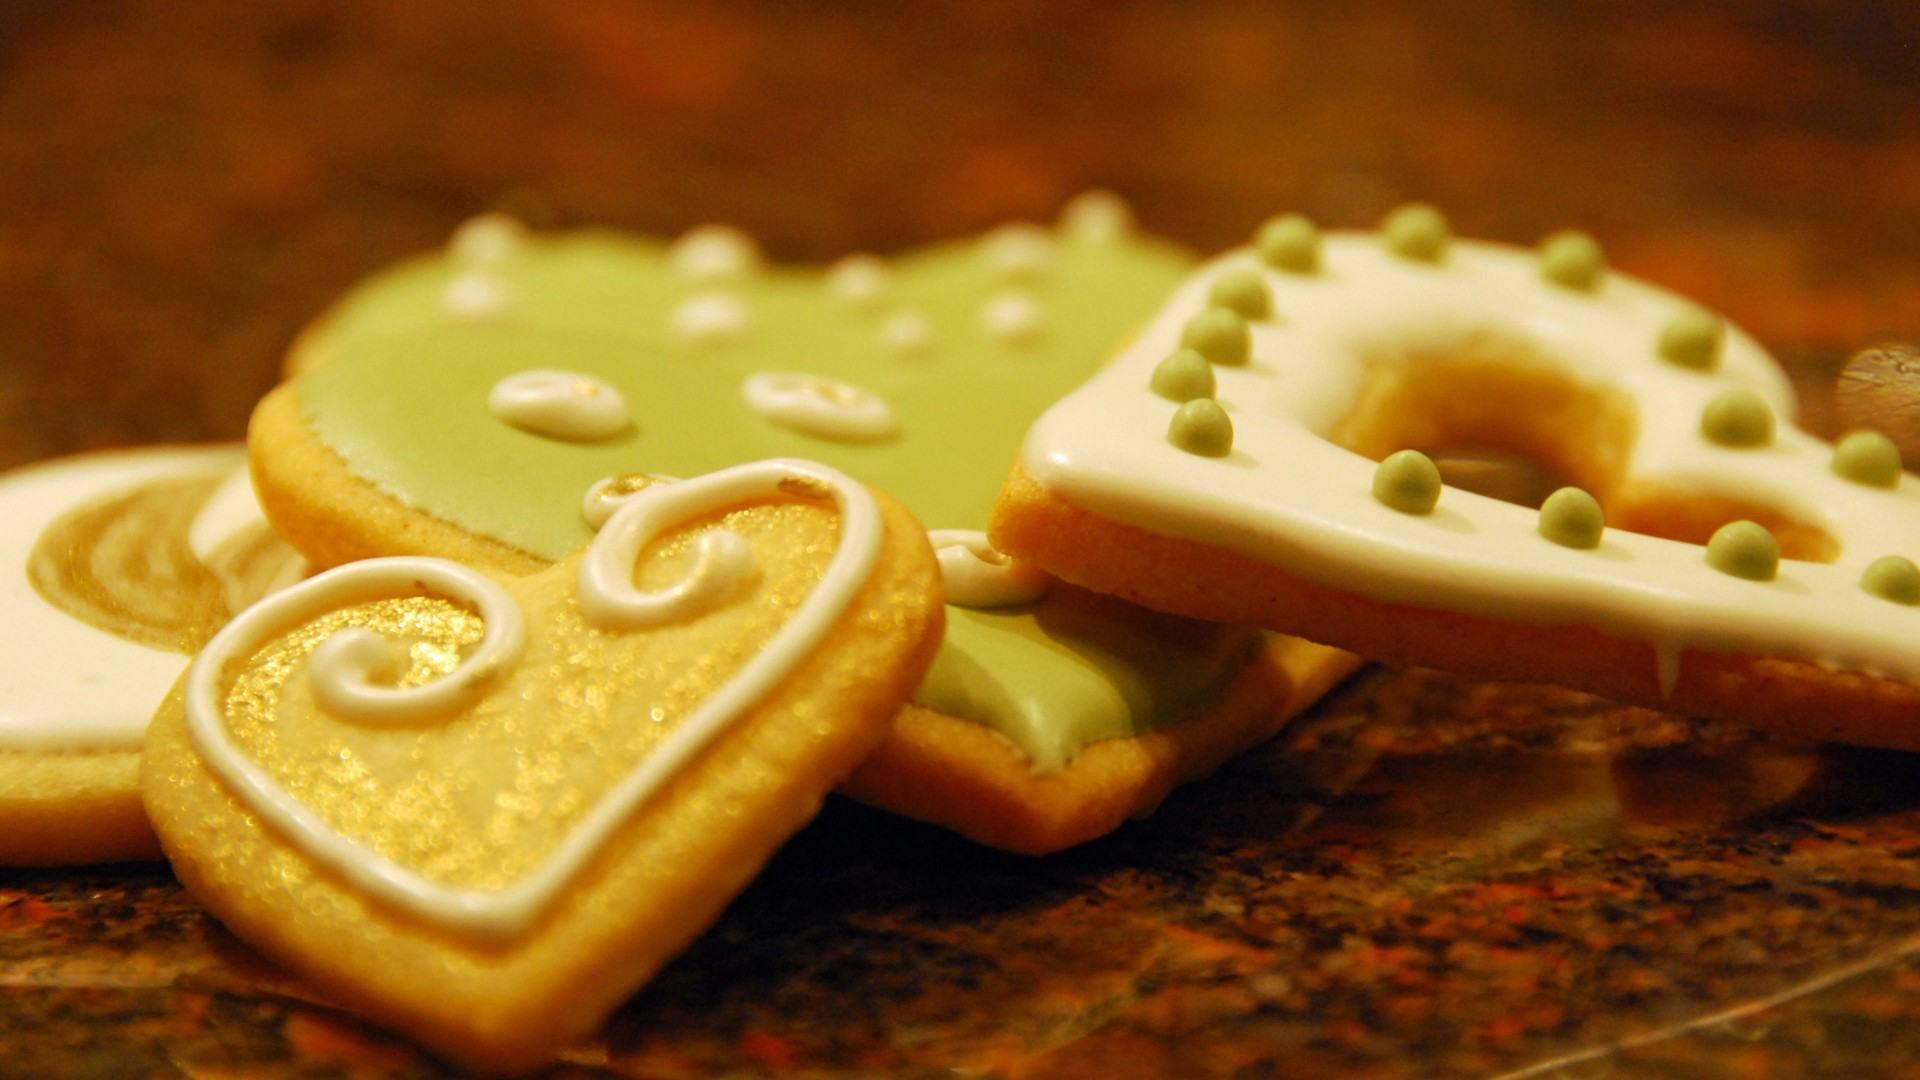 Sugar Cookies Background   Wallpaper High Definition High Quality 1920x1080